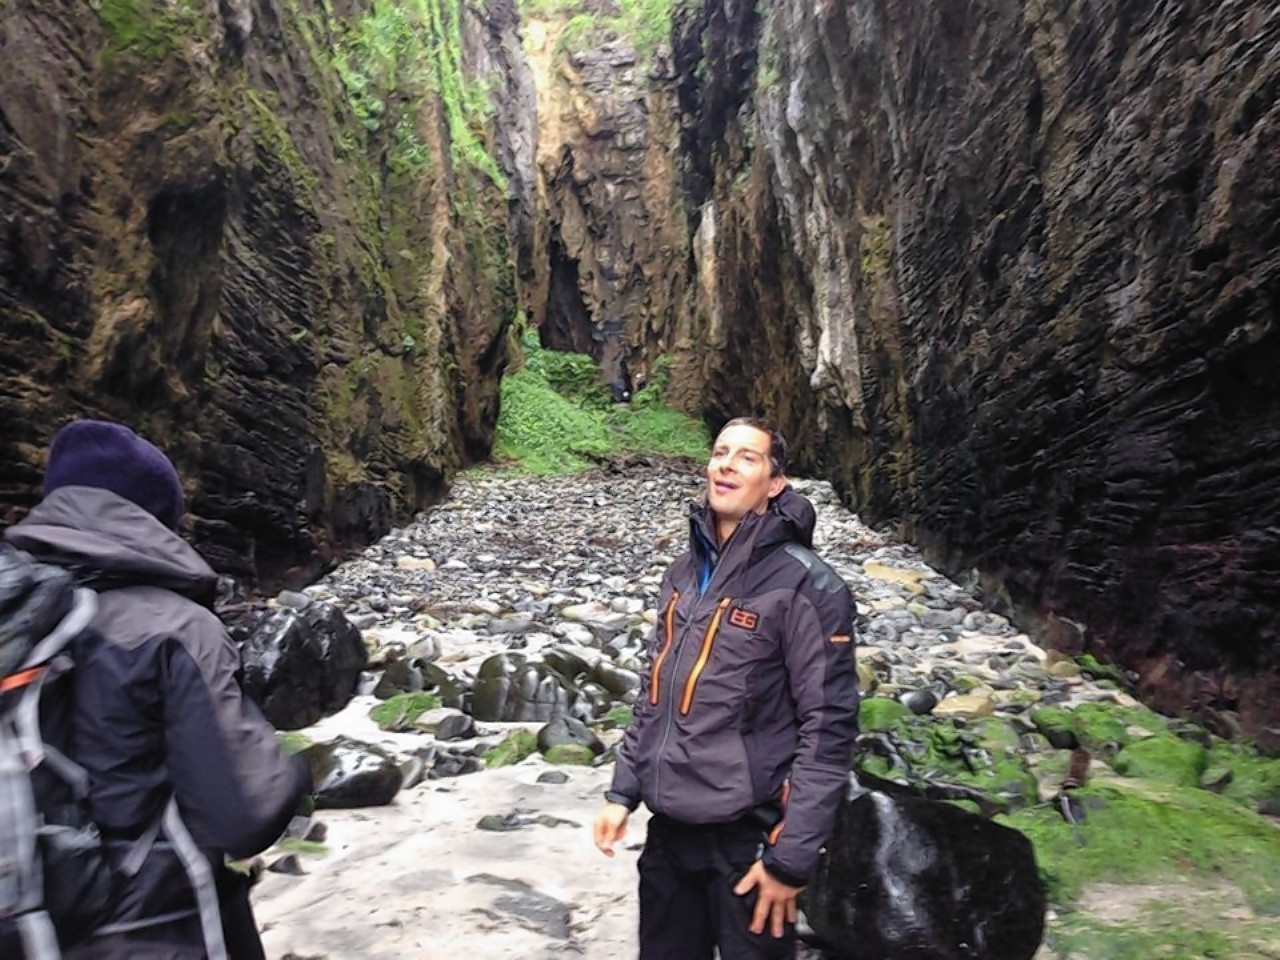 Bear Grylls was to be found on a less exotic island in the Hebrides this week